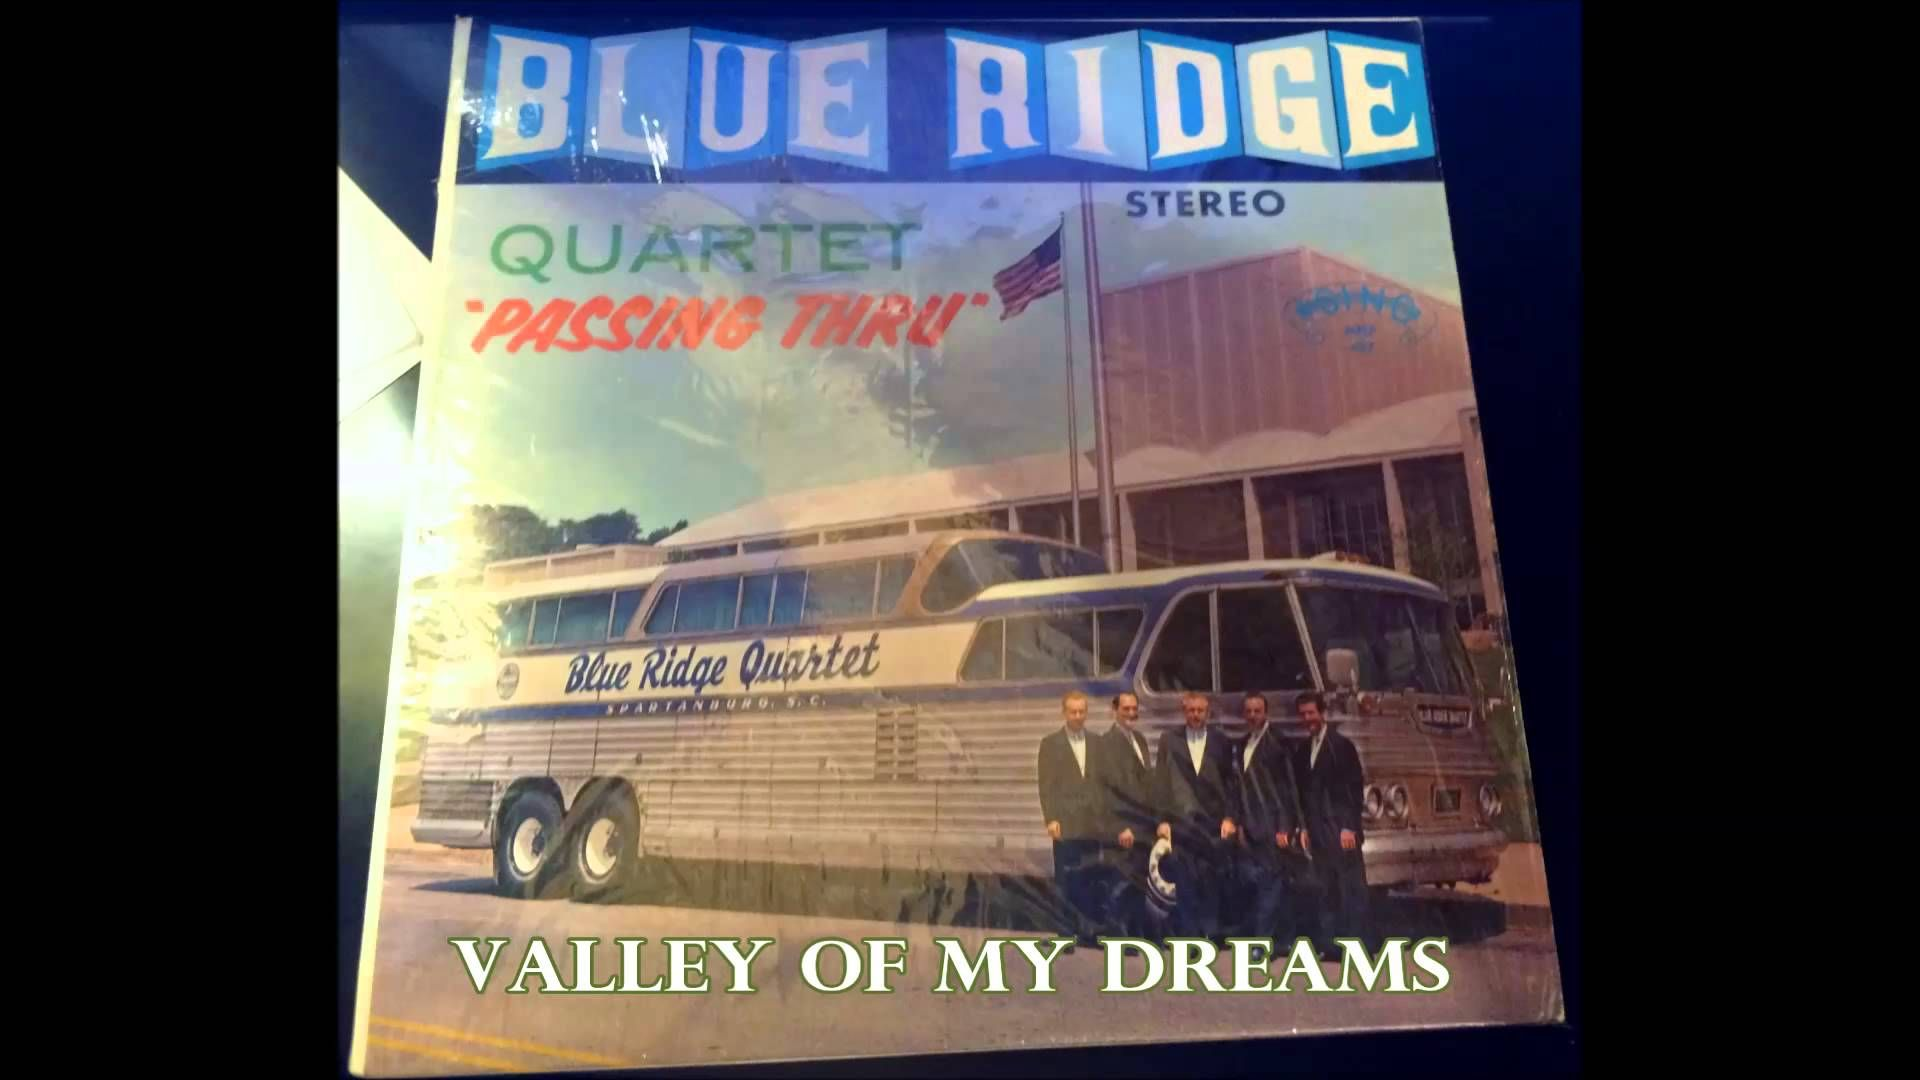 From the vinyl LP Passing Thru (1963) – The Blue Ridge Quartet. The Blue Ridge Quartet at this time were: Ed Sprouse, Elmo Fagg, Bill Crowe, George Younce & ...